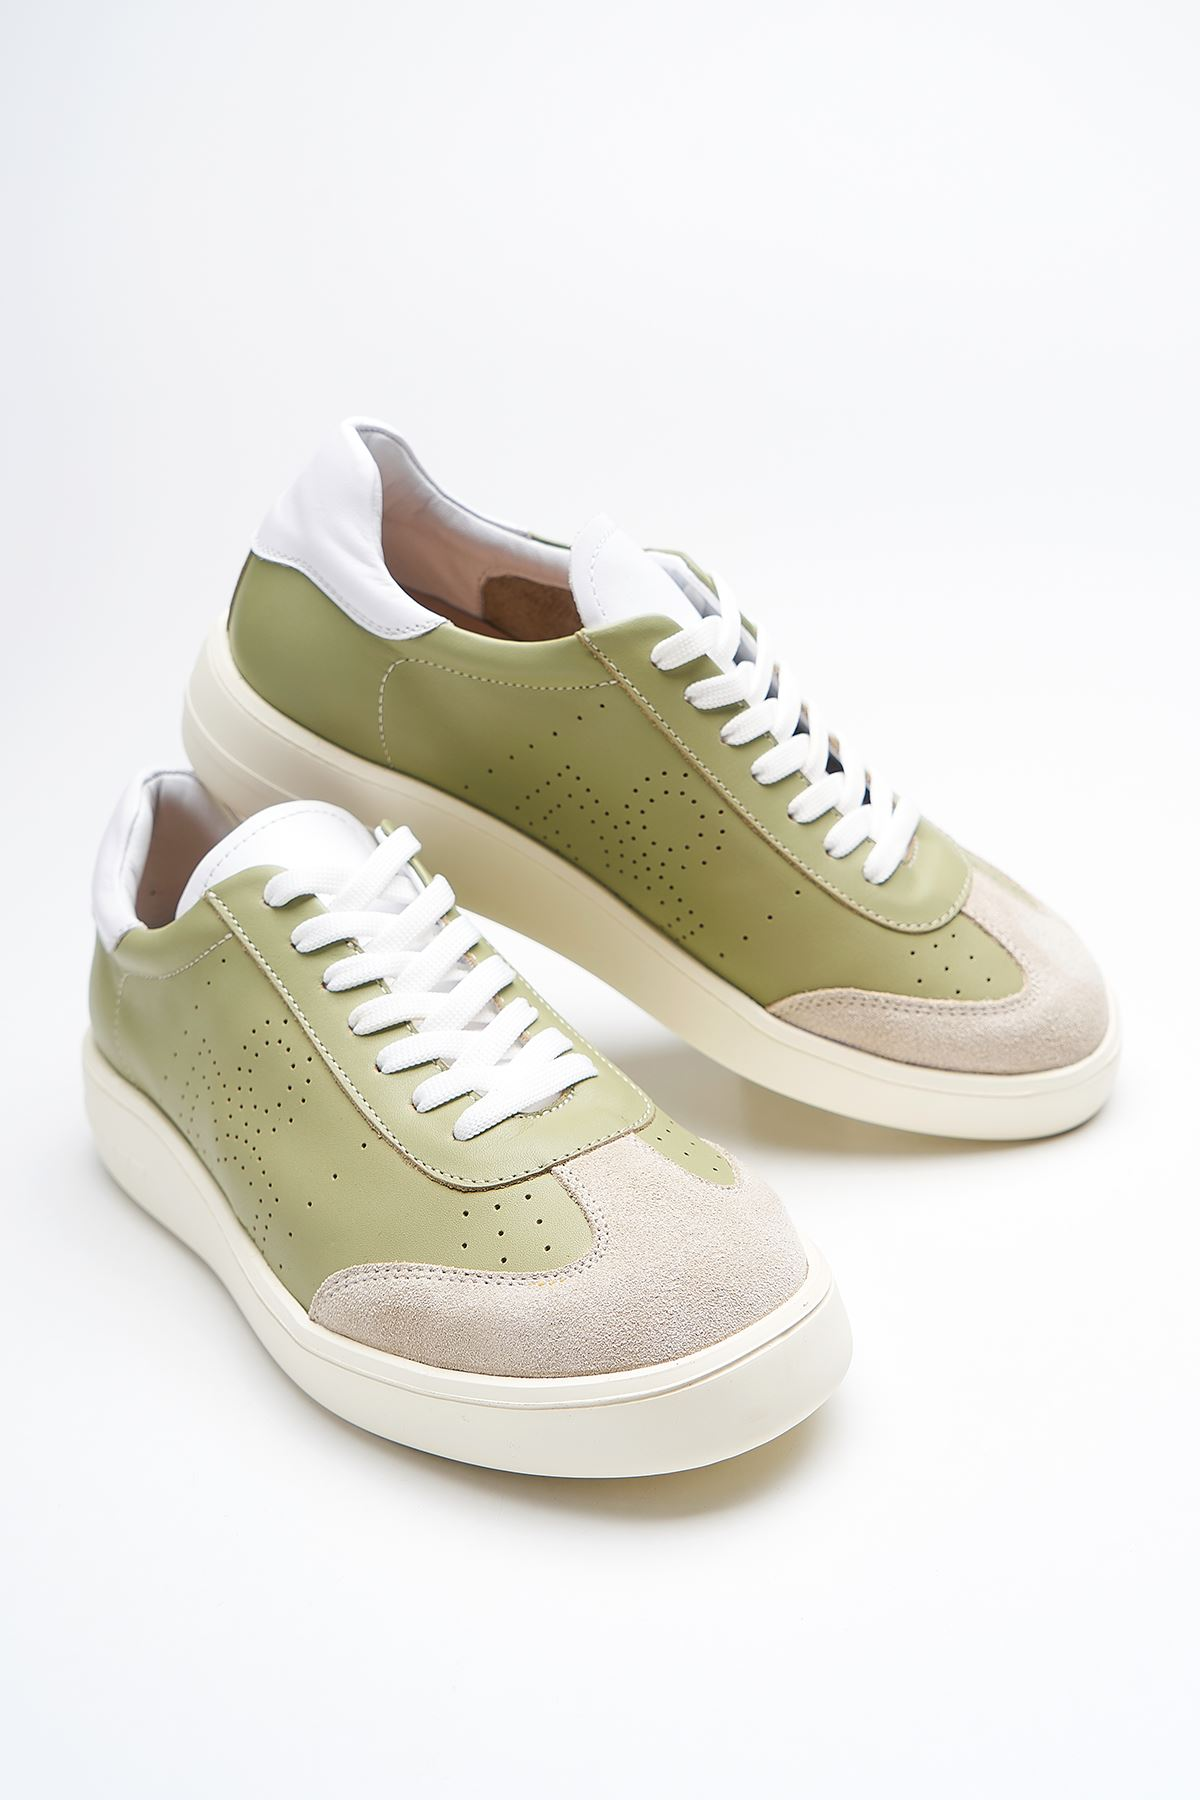 Alastor Green Genuine Leather Women Sneakers